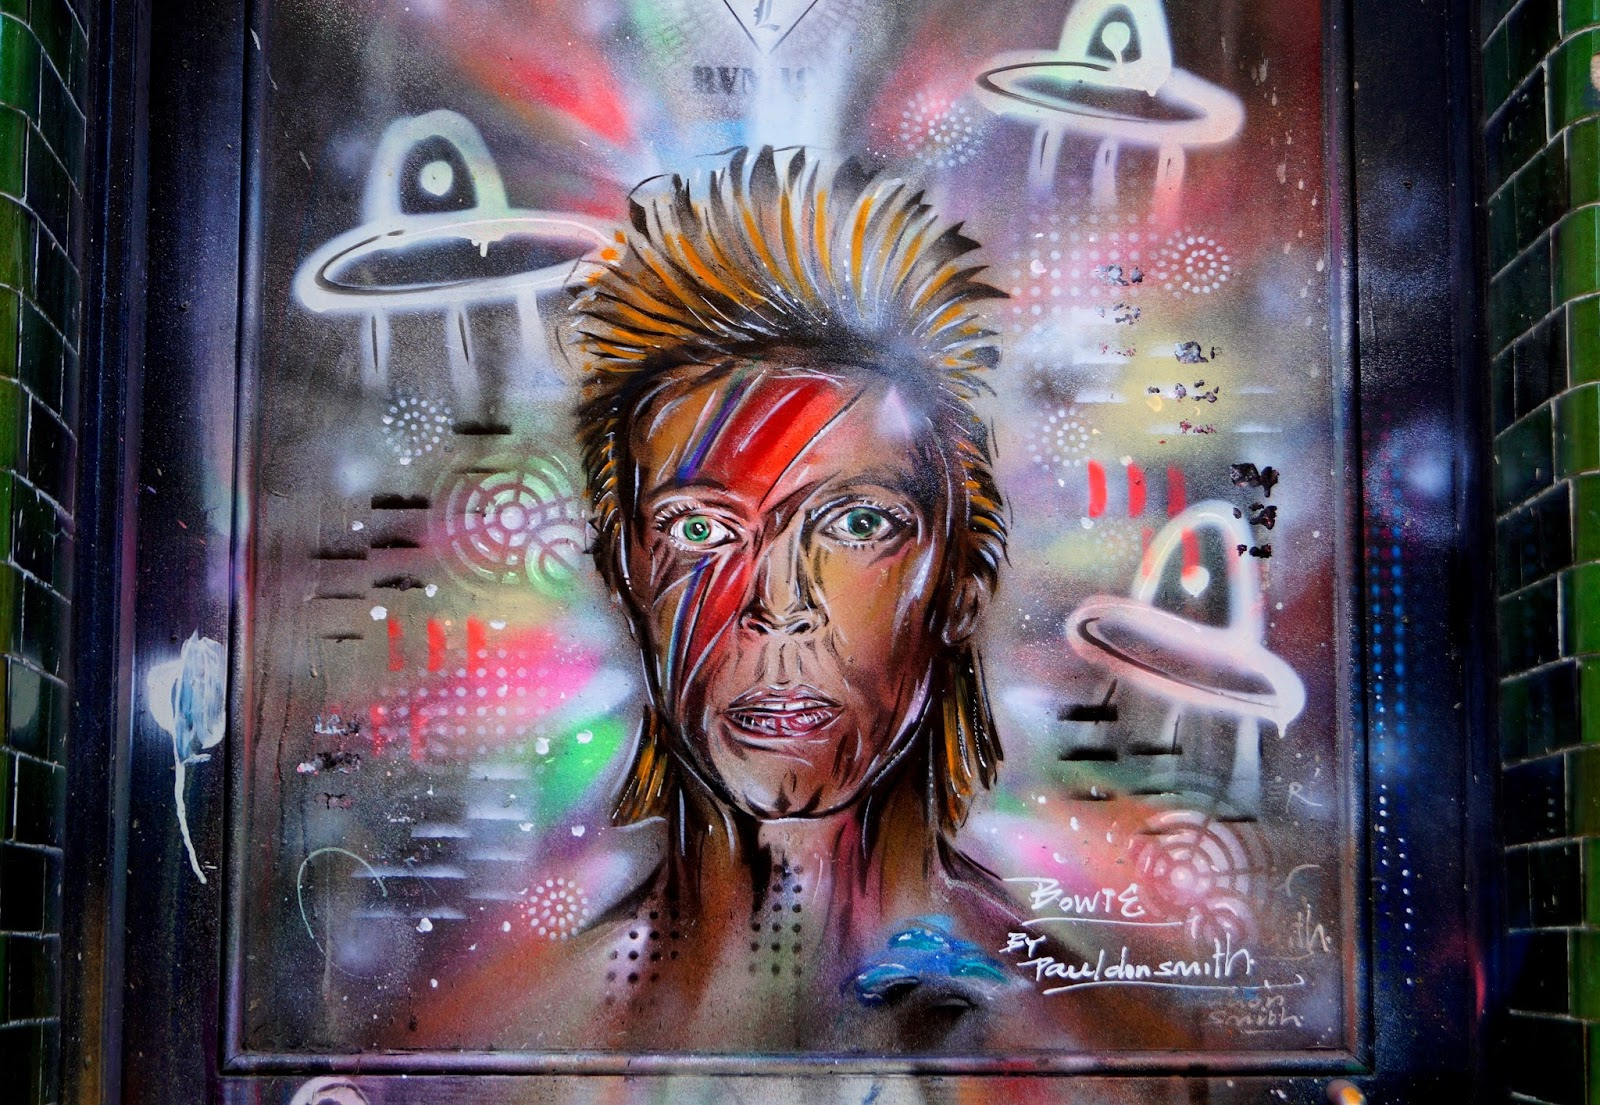 David Bowie mural London